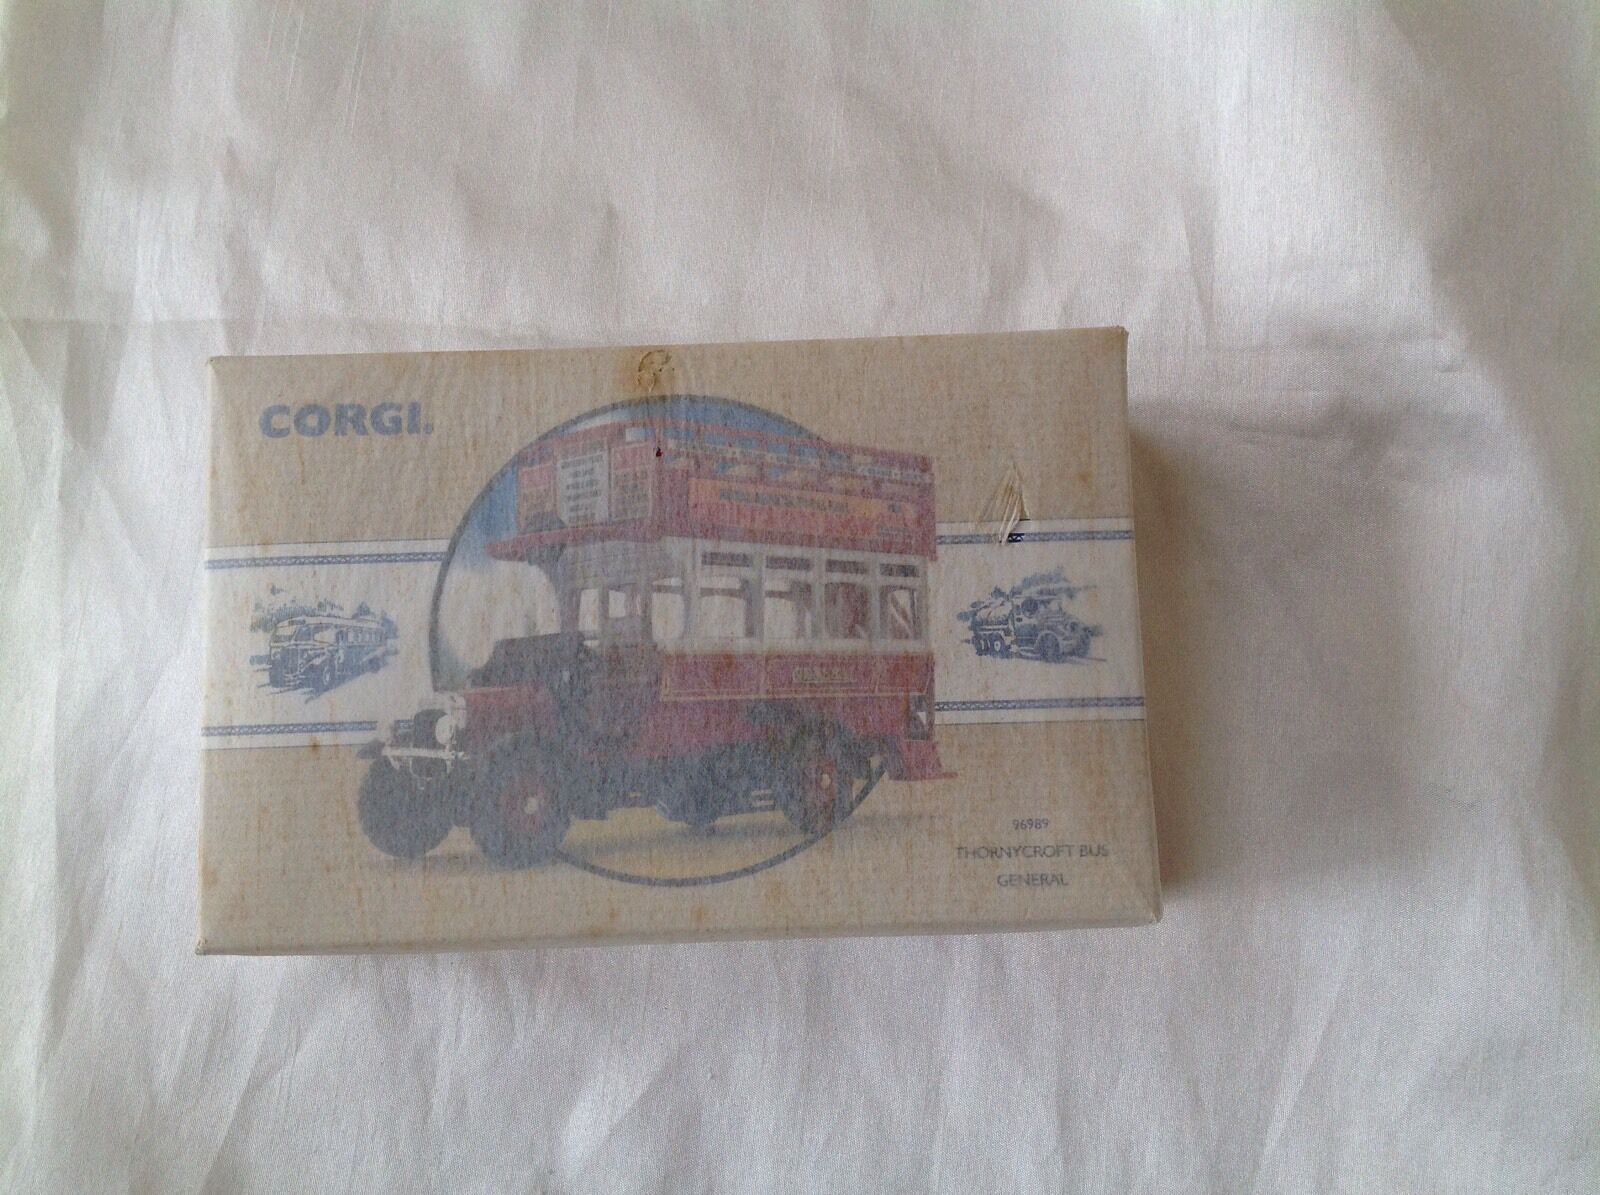 Corgi New Toy Model 96989 Thornycroft Bus General NEVER OPENED TISSUE PAPER